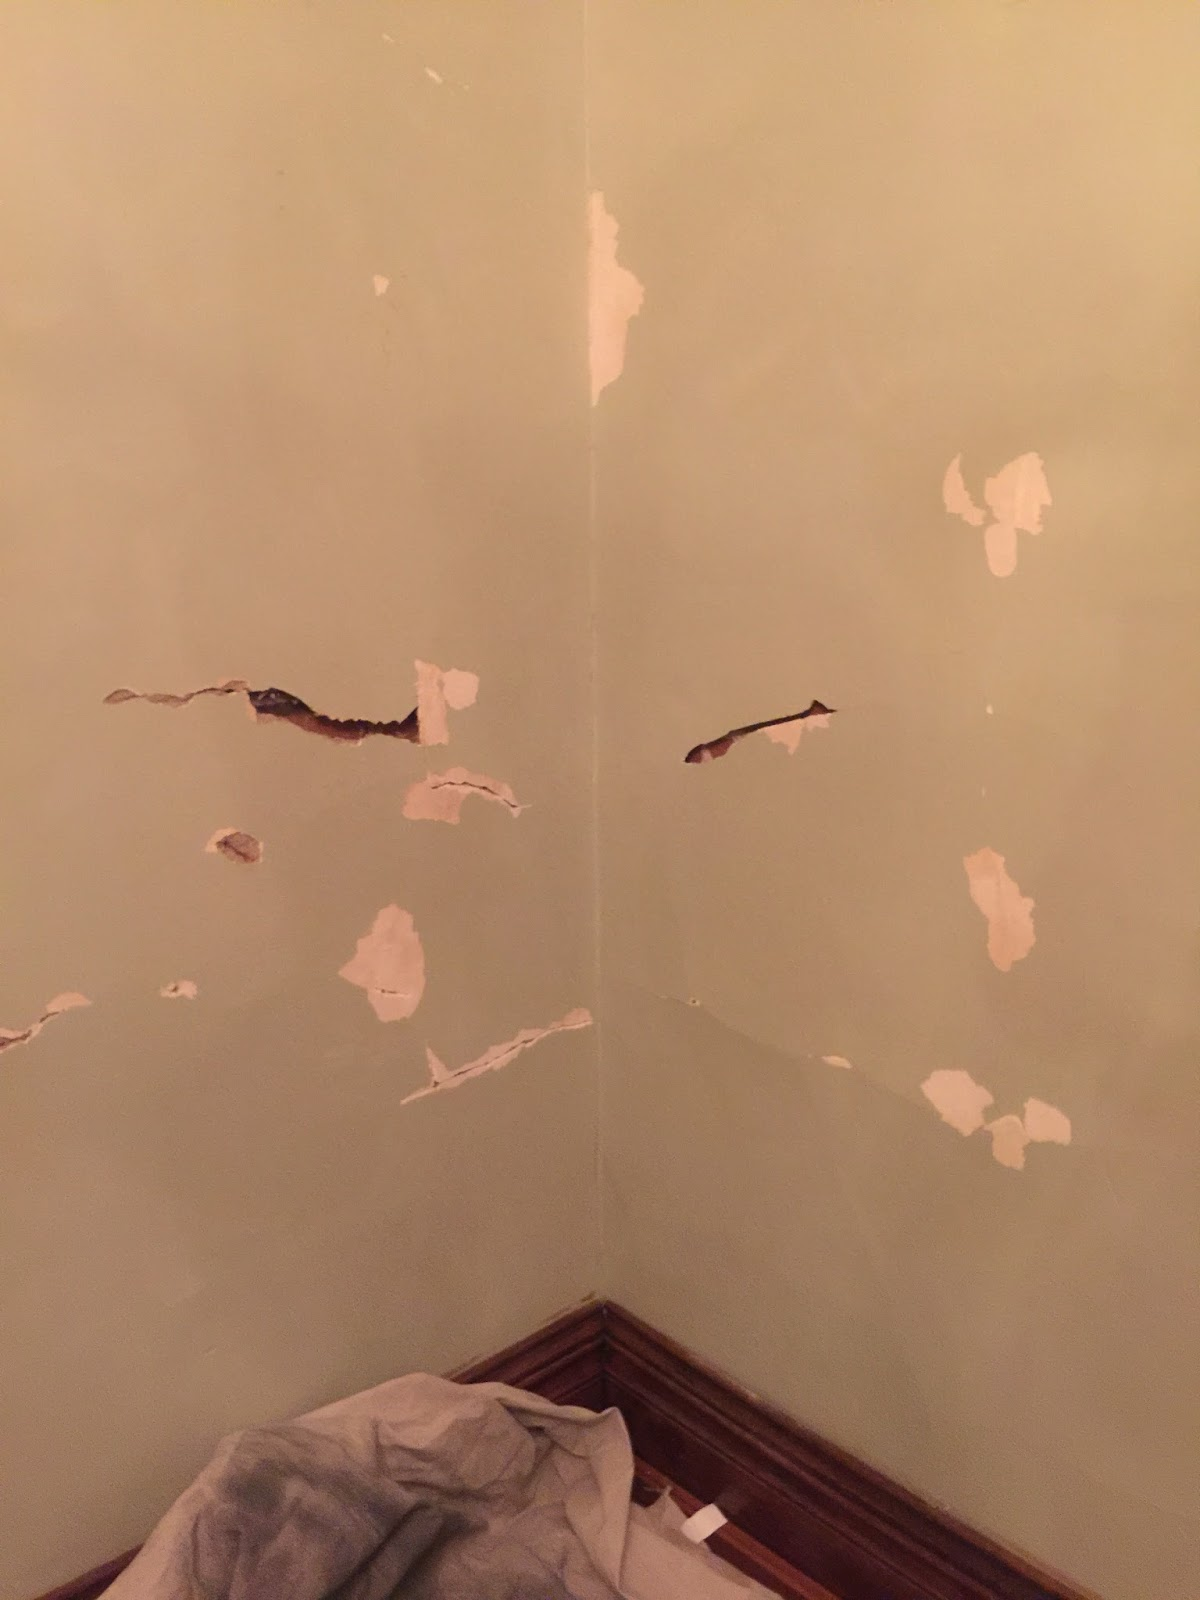 To Fix Detached Plaster Ly Pressure The Area Determine Where Has Broken Away From Wall With A 3 16 Masonry Bit Drill Holes